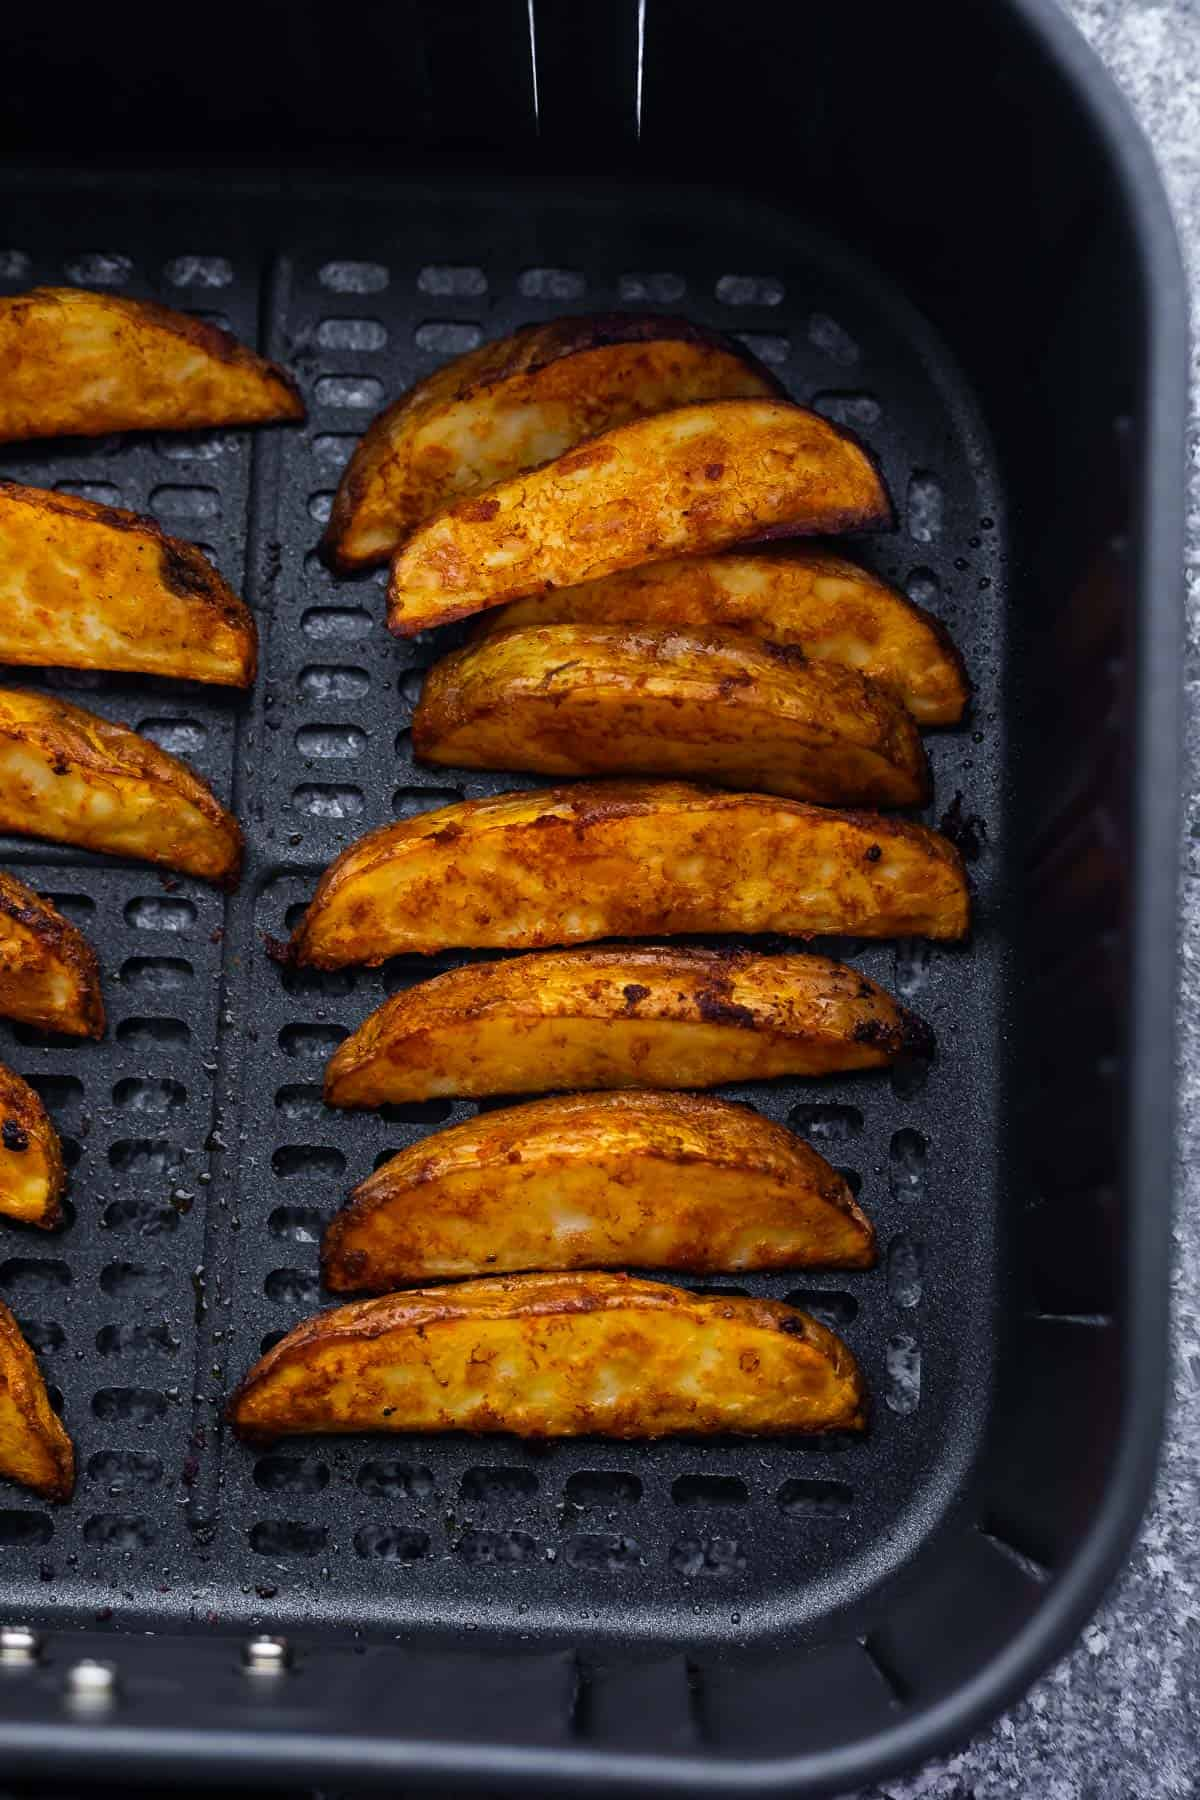 cooked potato wedges arranged in air fryer basket